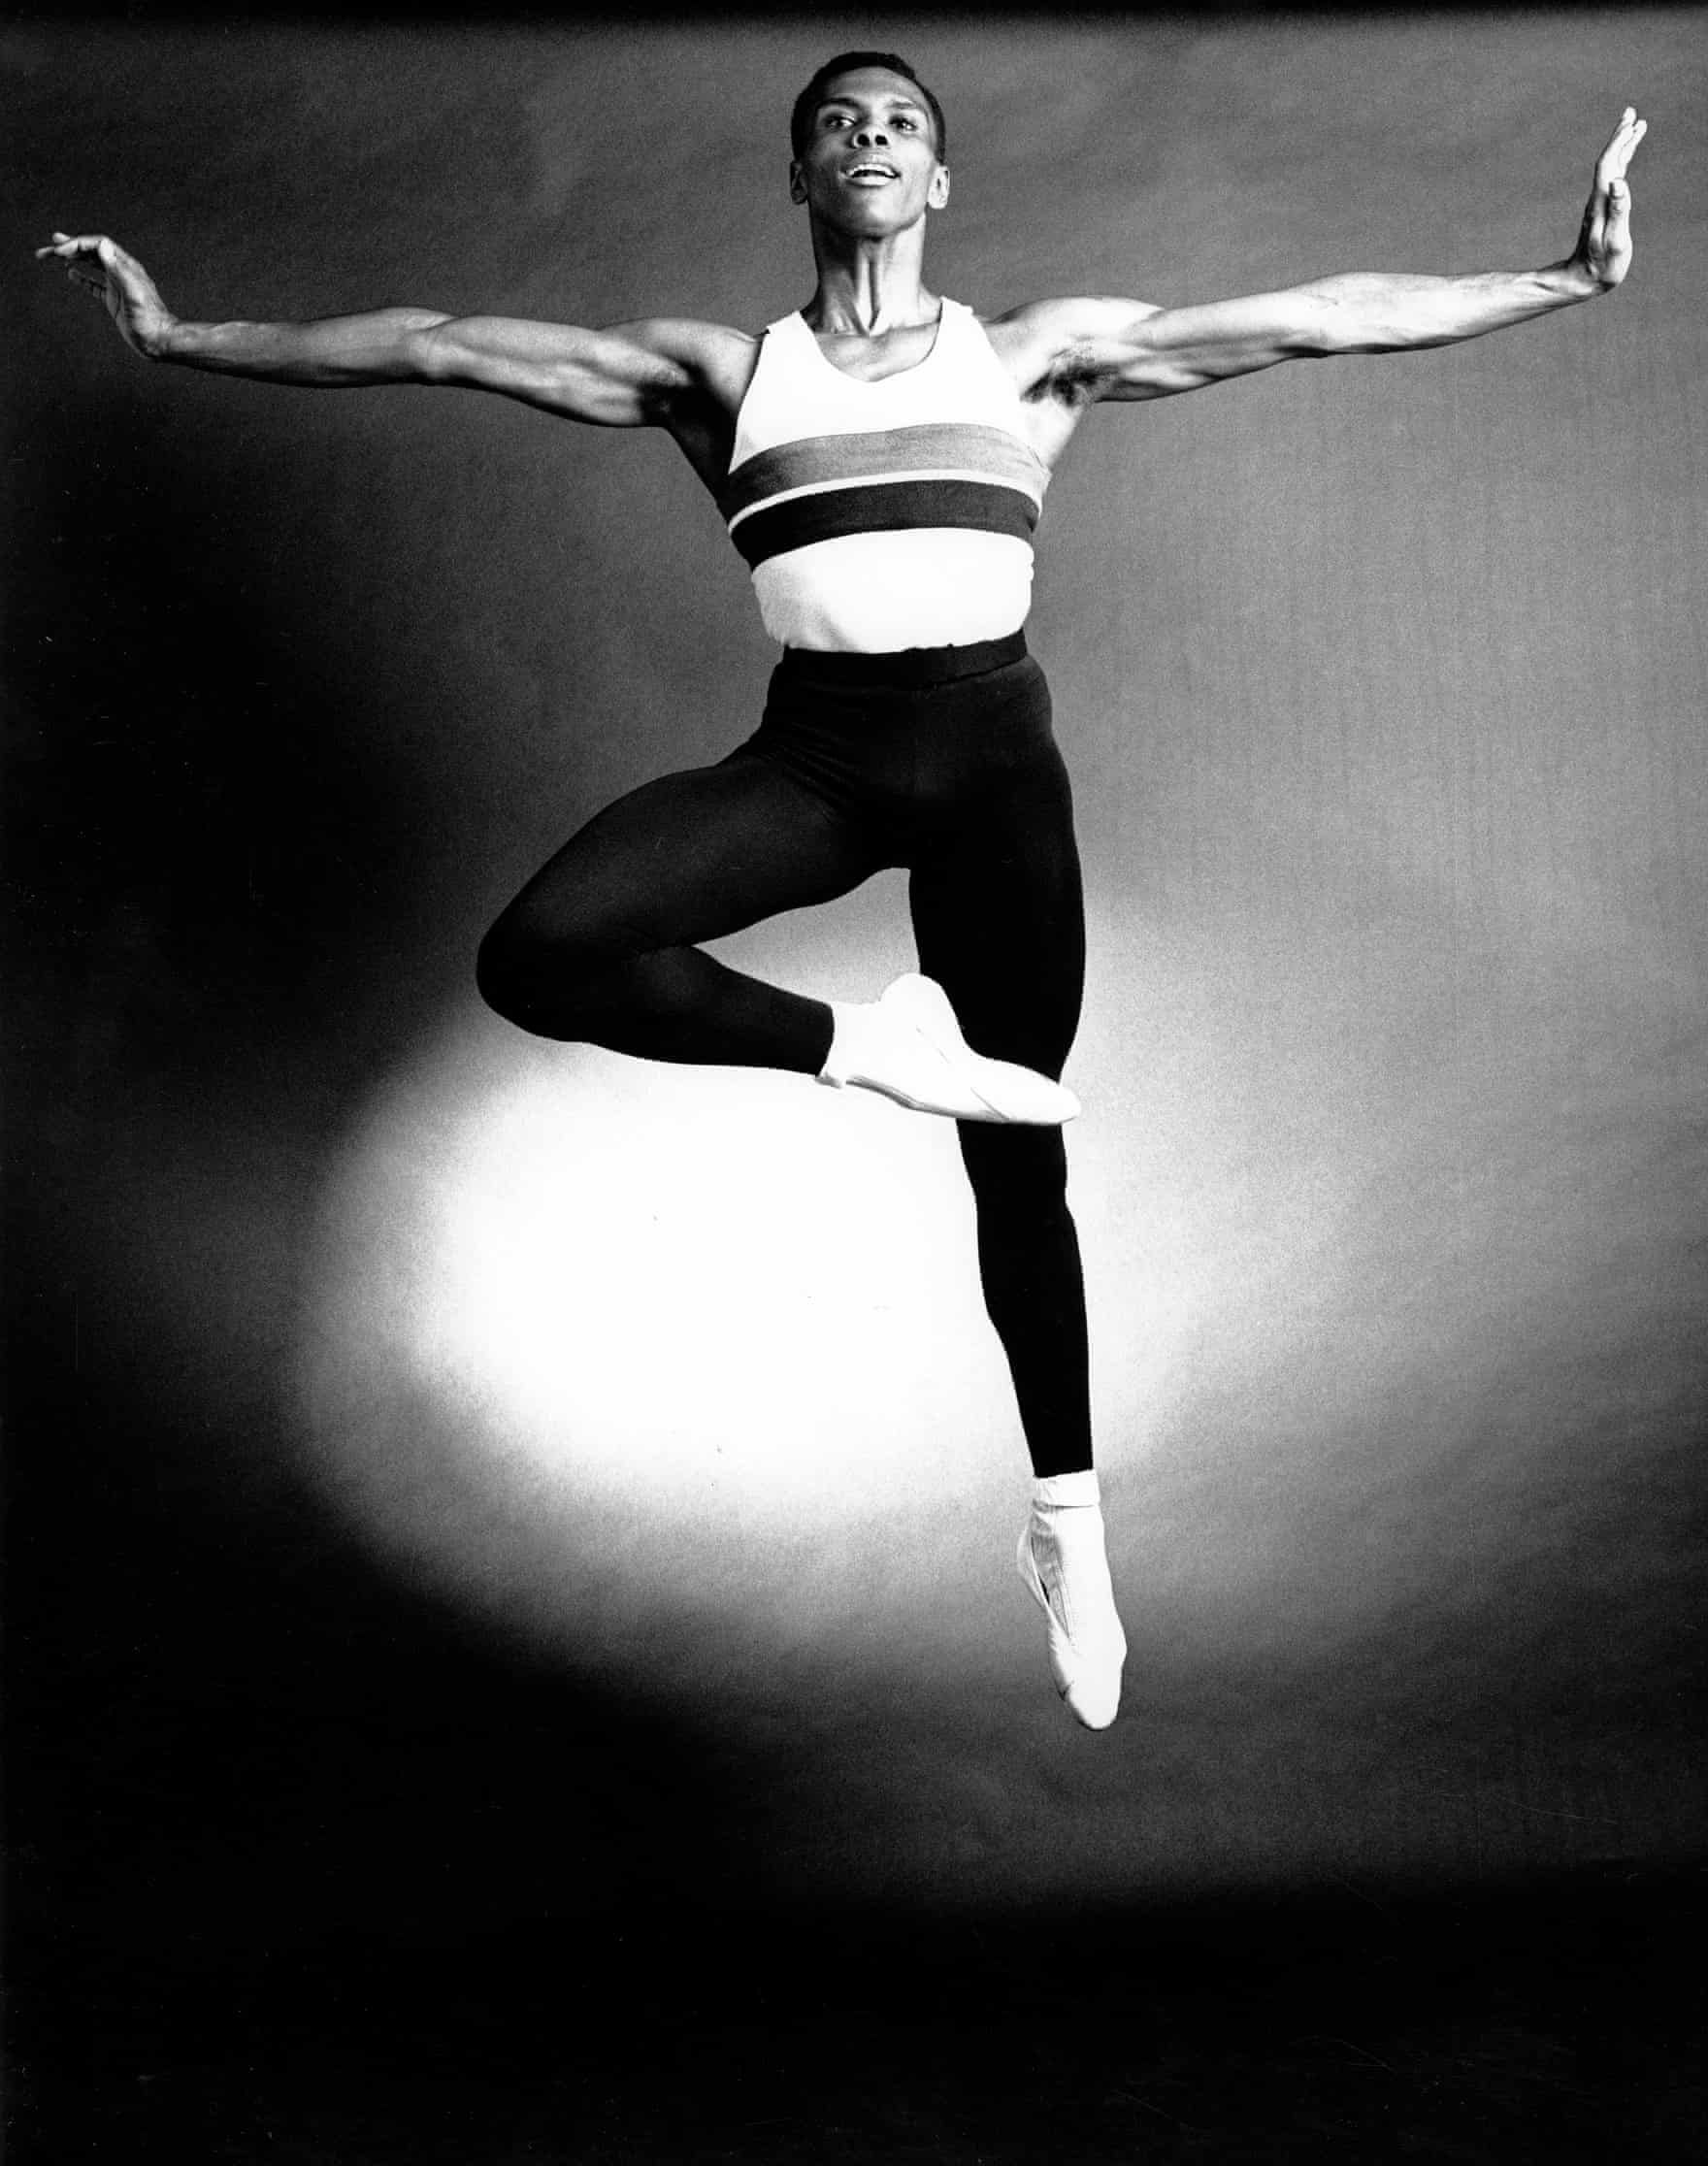 Pioneering Ballet Dancer Arthur Mitchell A Life In Pictures